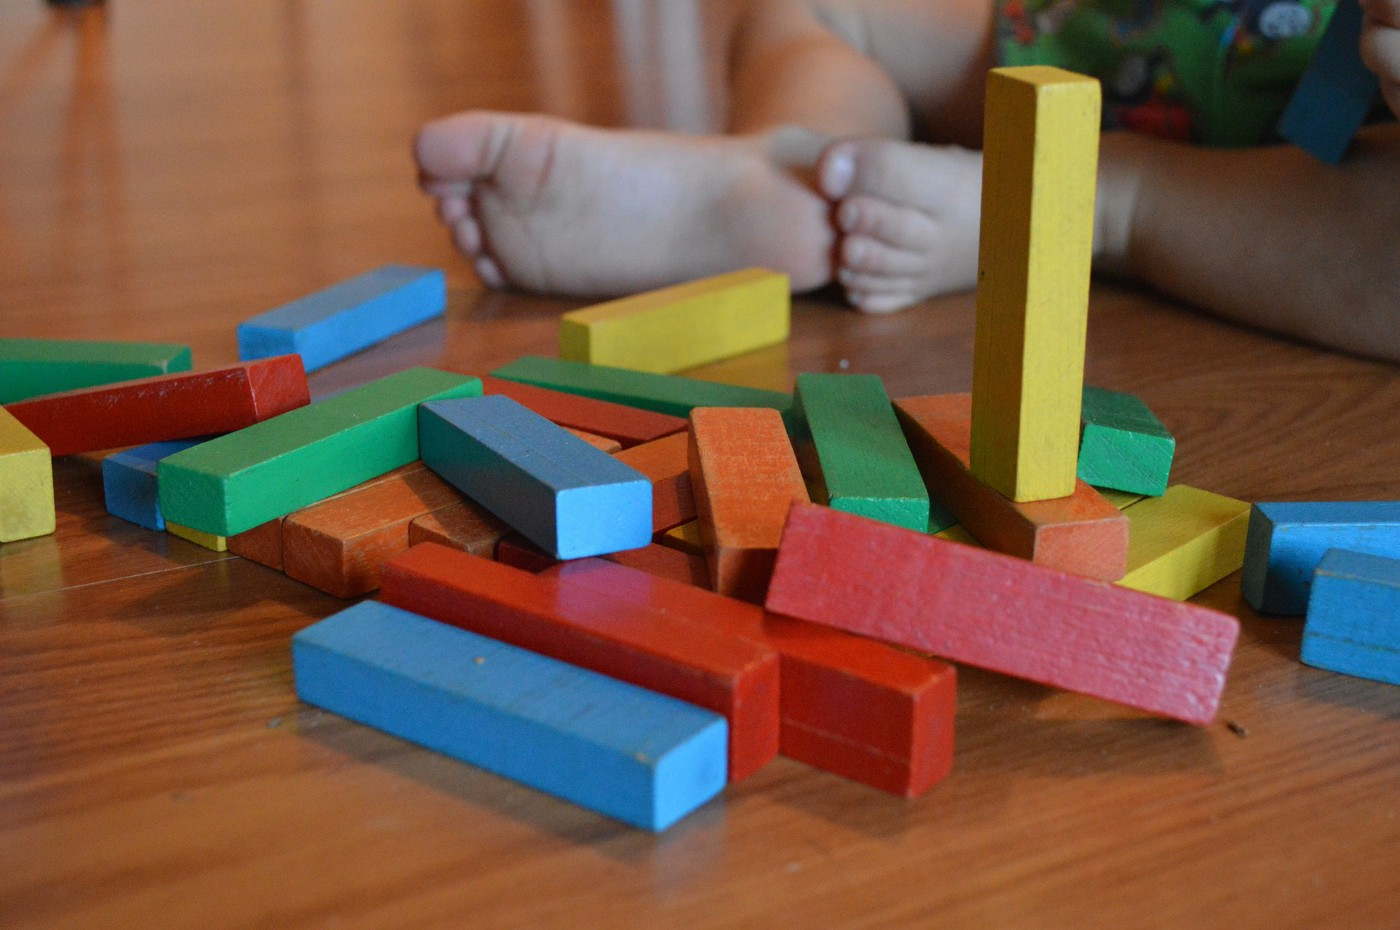 Colorful wooden blocks on floor, with baby feet in background